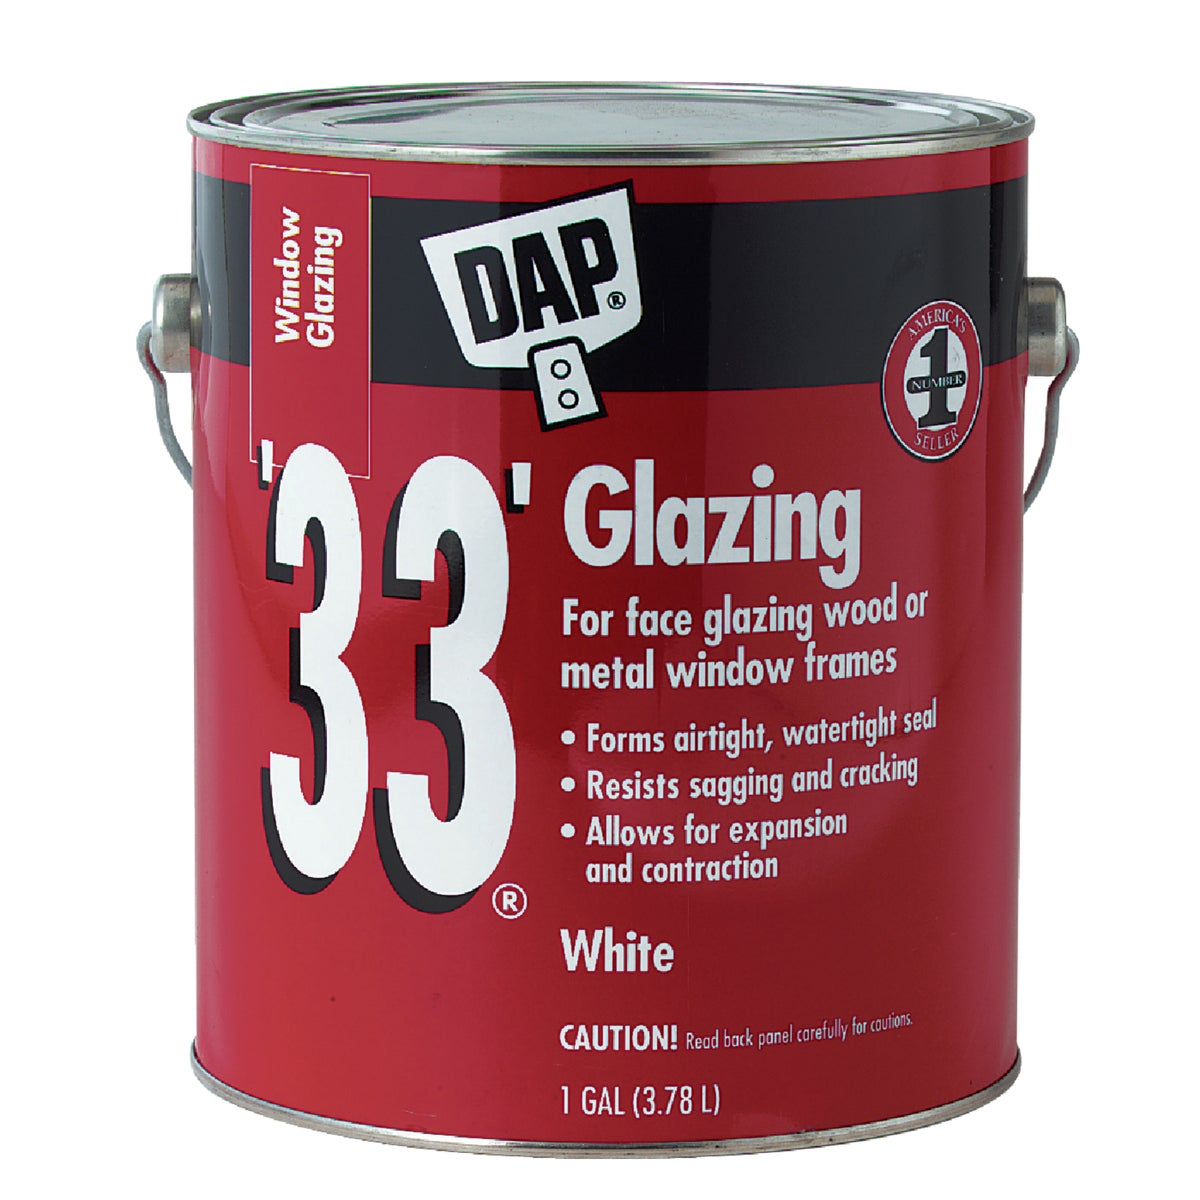 GAL WHT GLAZING COMPOUND - 12019 by Dap Inc